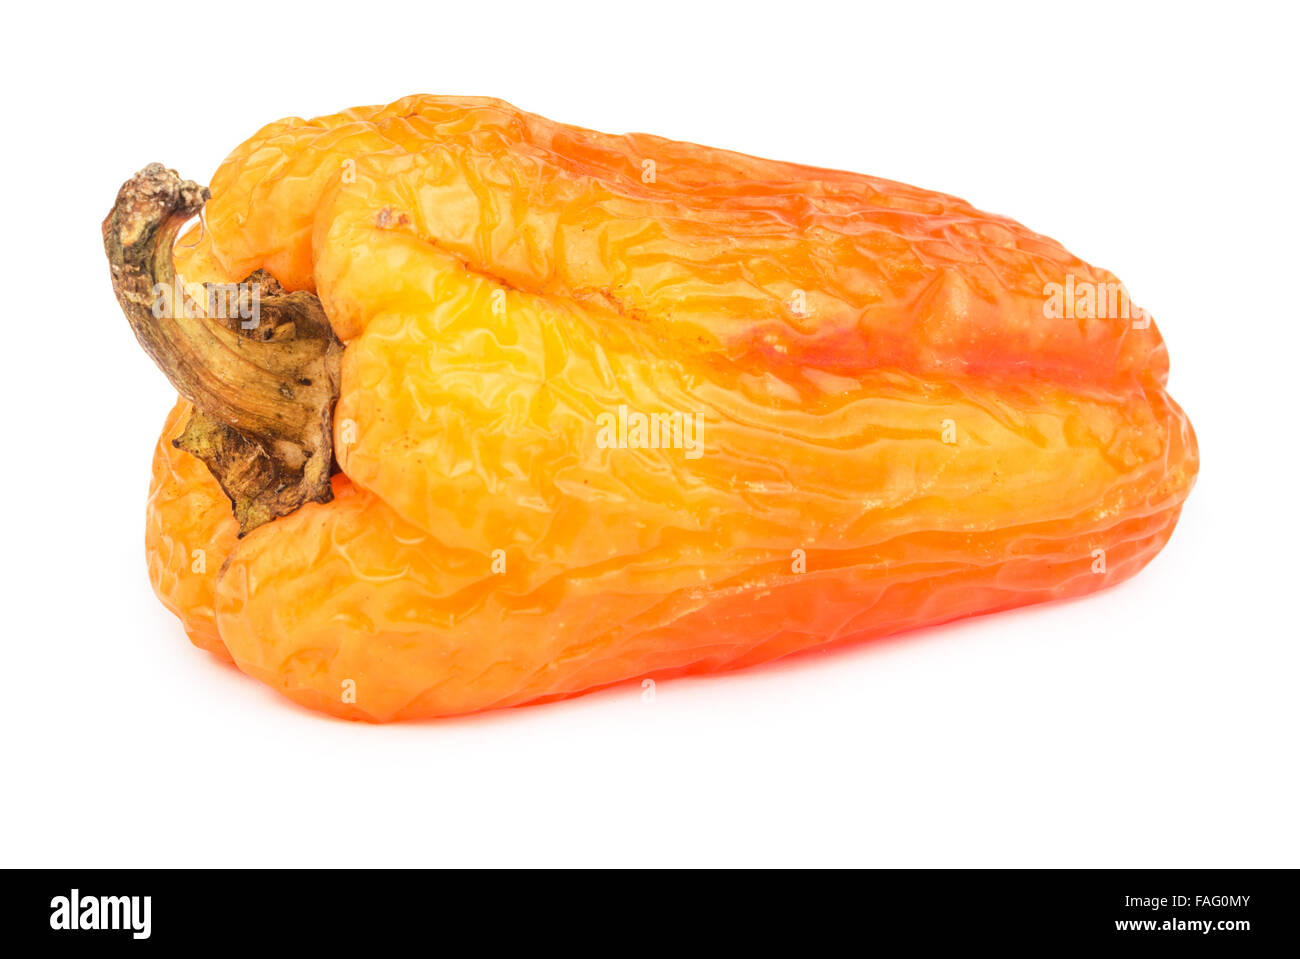 Spoiled yellow bell pepper isolated on white background. - Stock Image